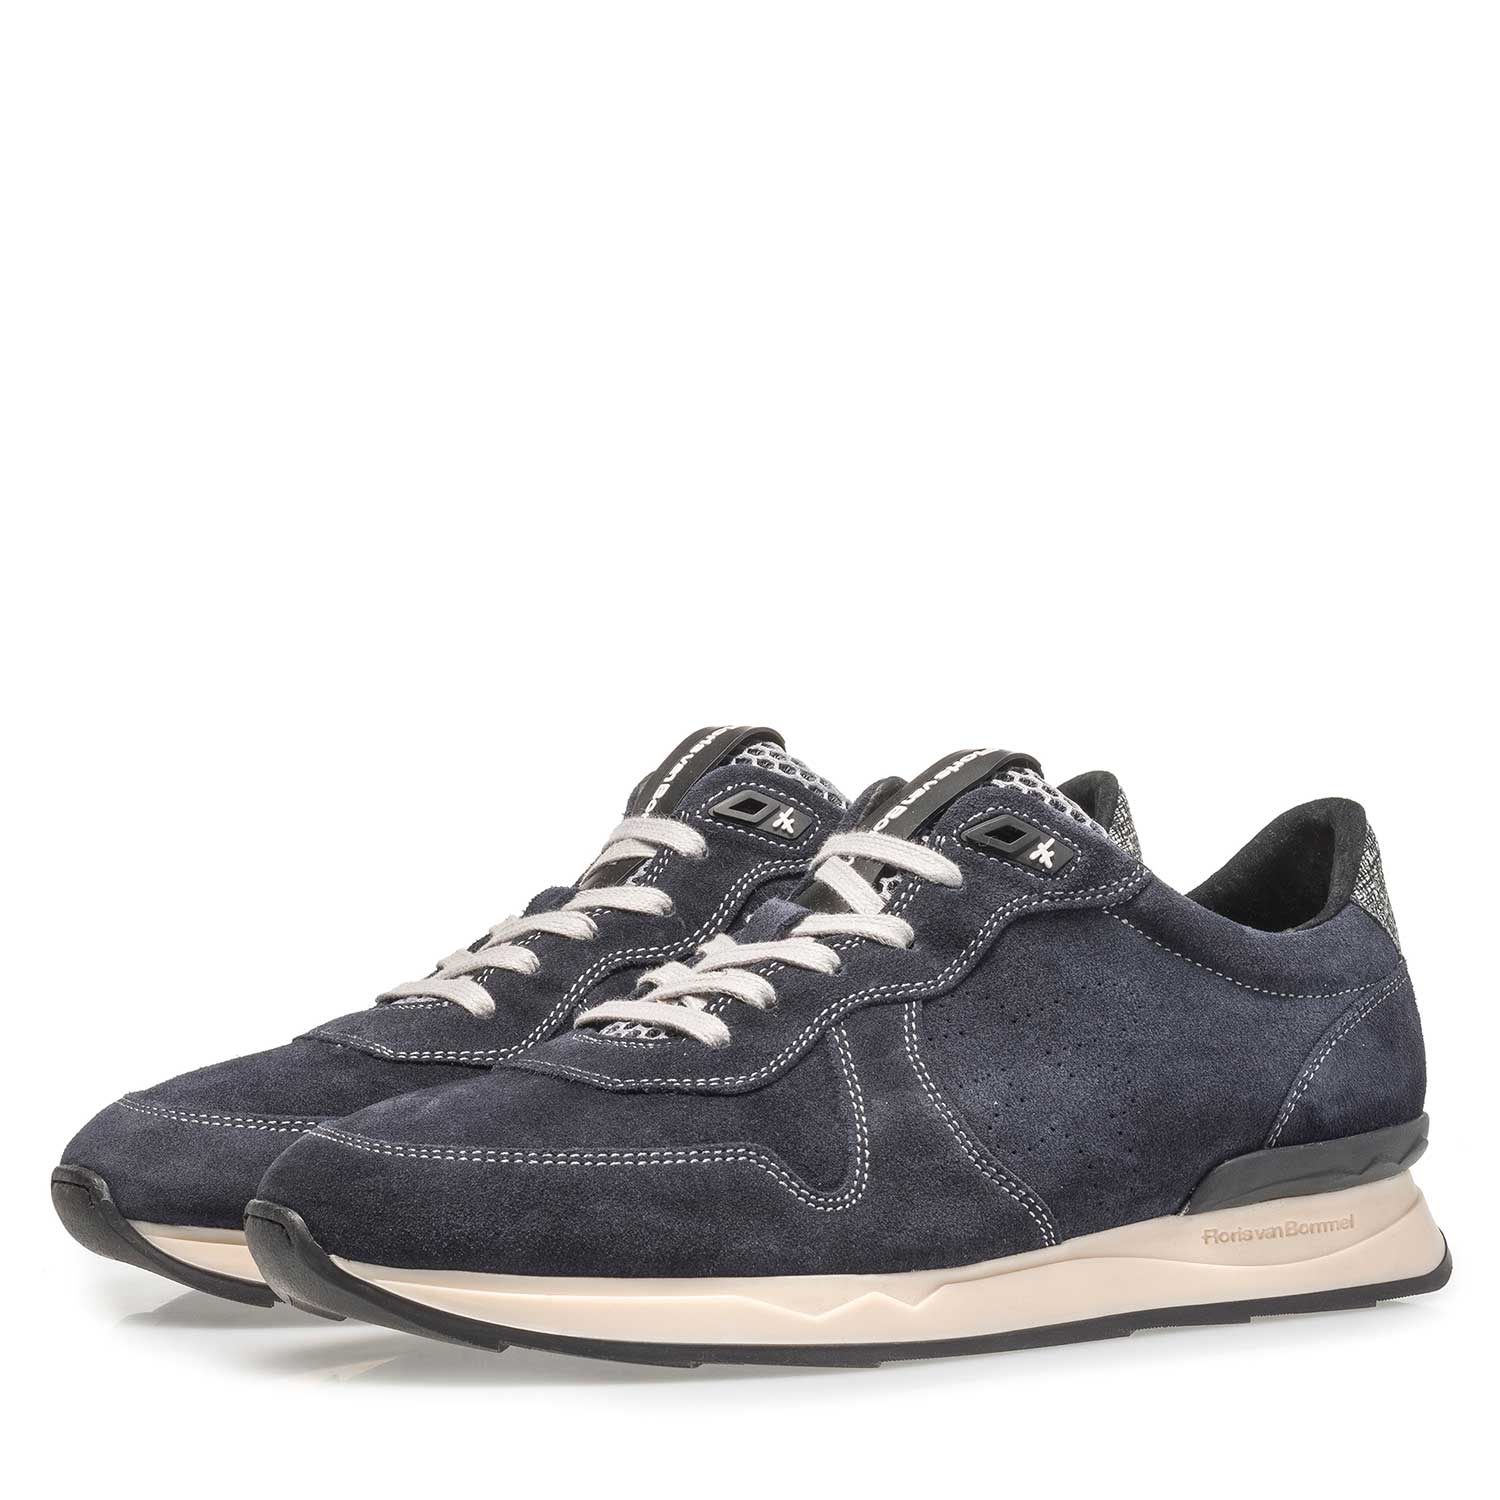 16277/00 - Dark blue suede leather lace shoe